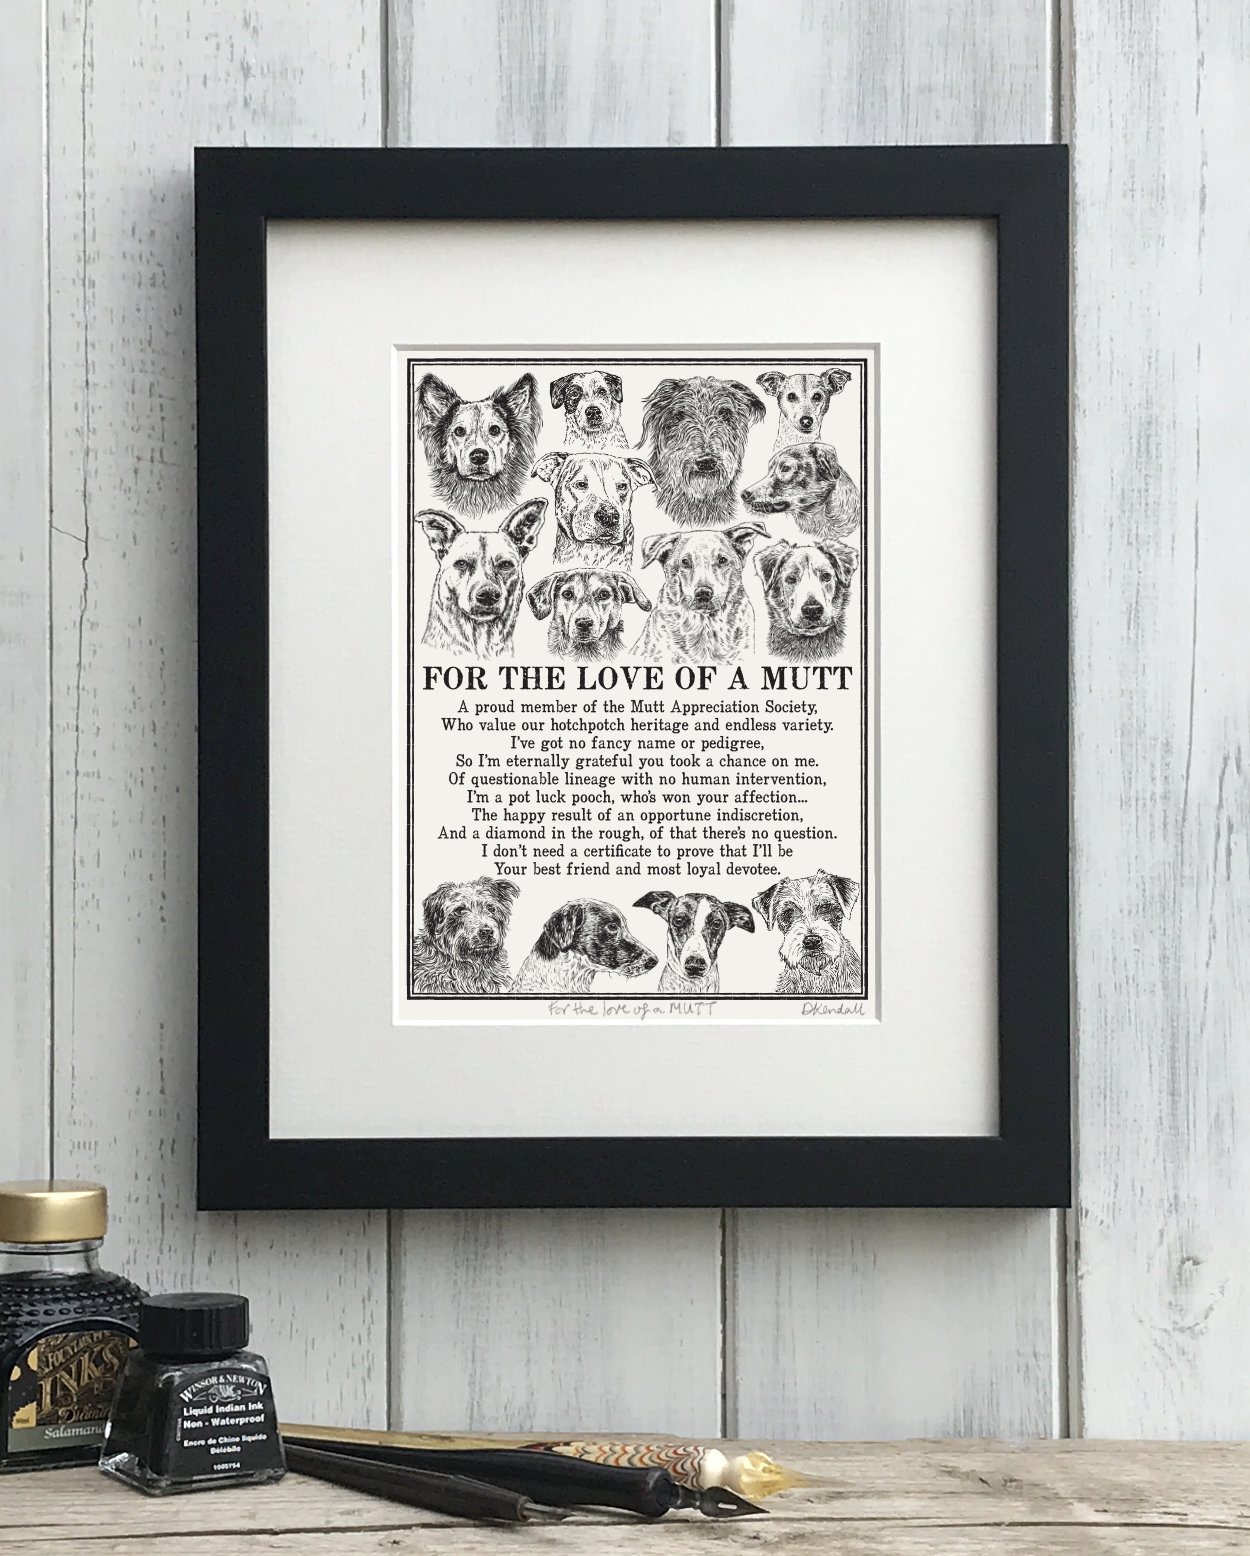 Mutt Mixed Breed Mongrel Dog Illustrated Poem Art Print | The Enlightened Hound